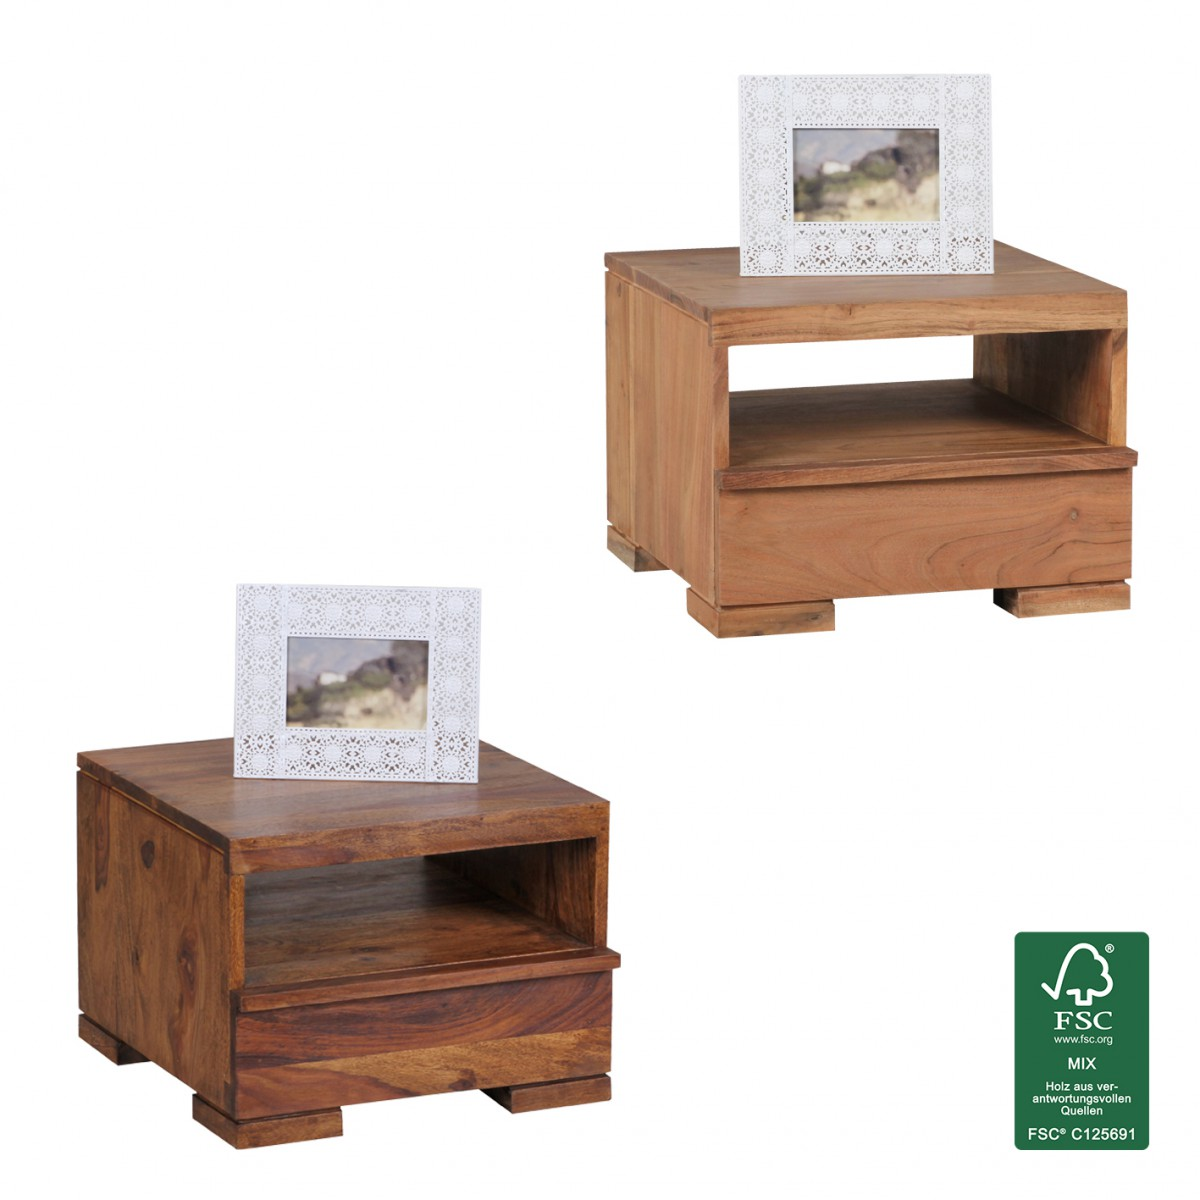 Finebuy Table De Chevet En Bois Massif Table De Chevet 30